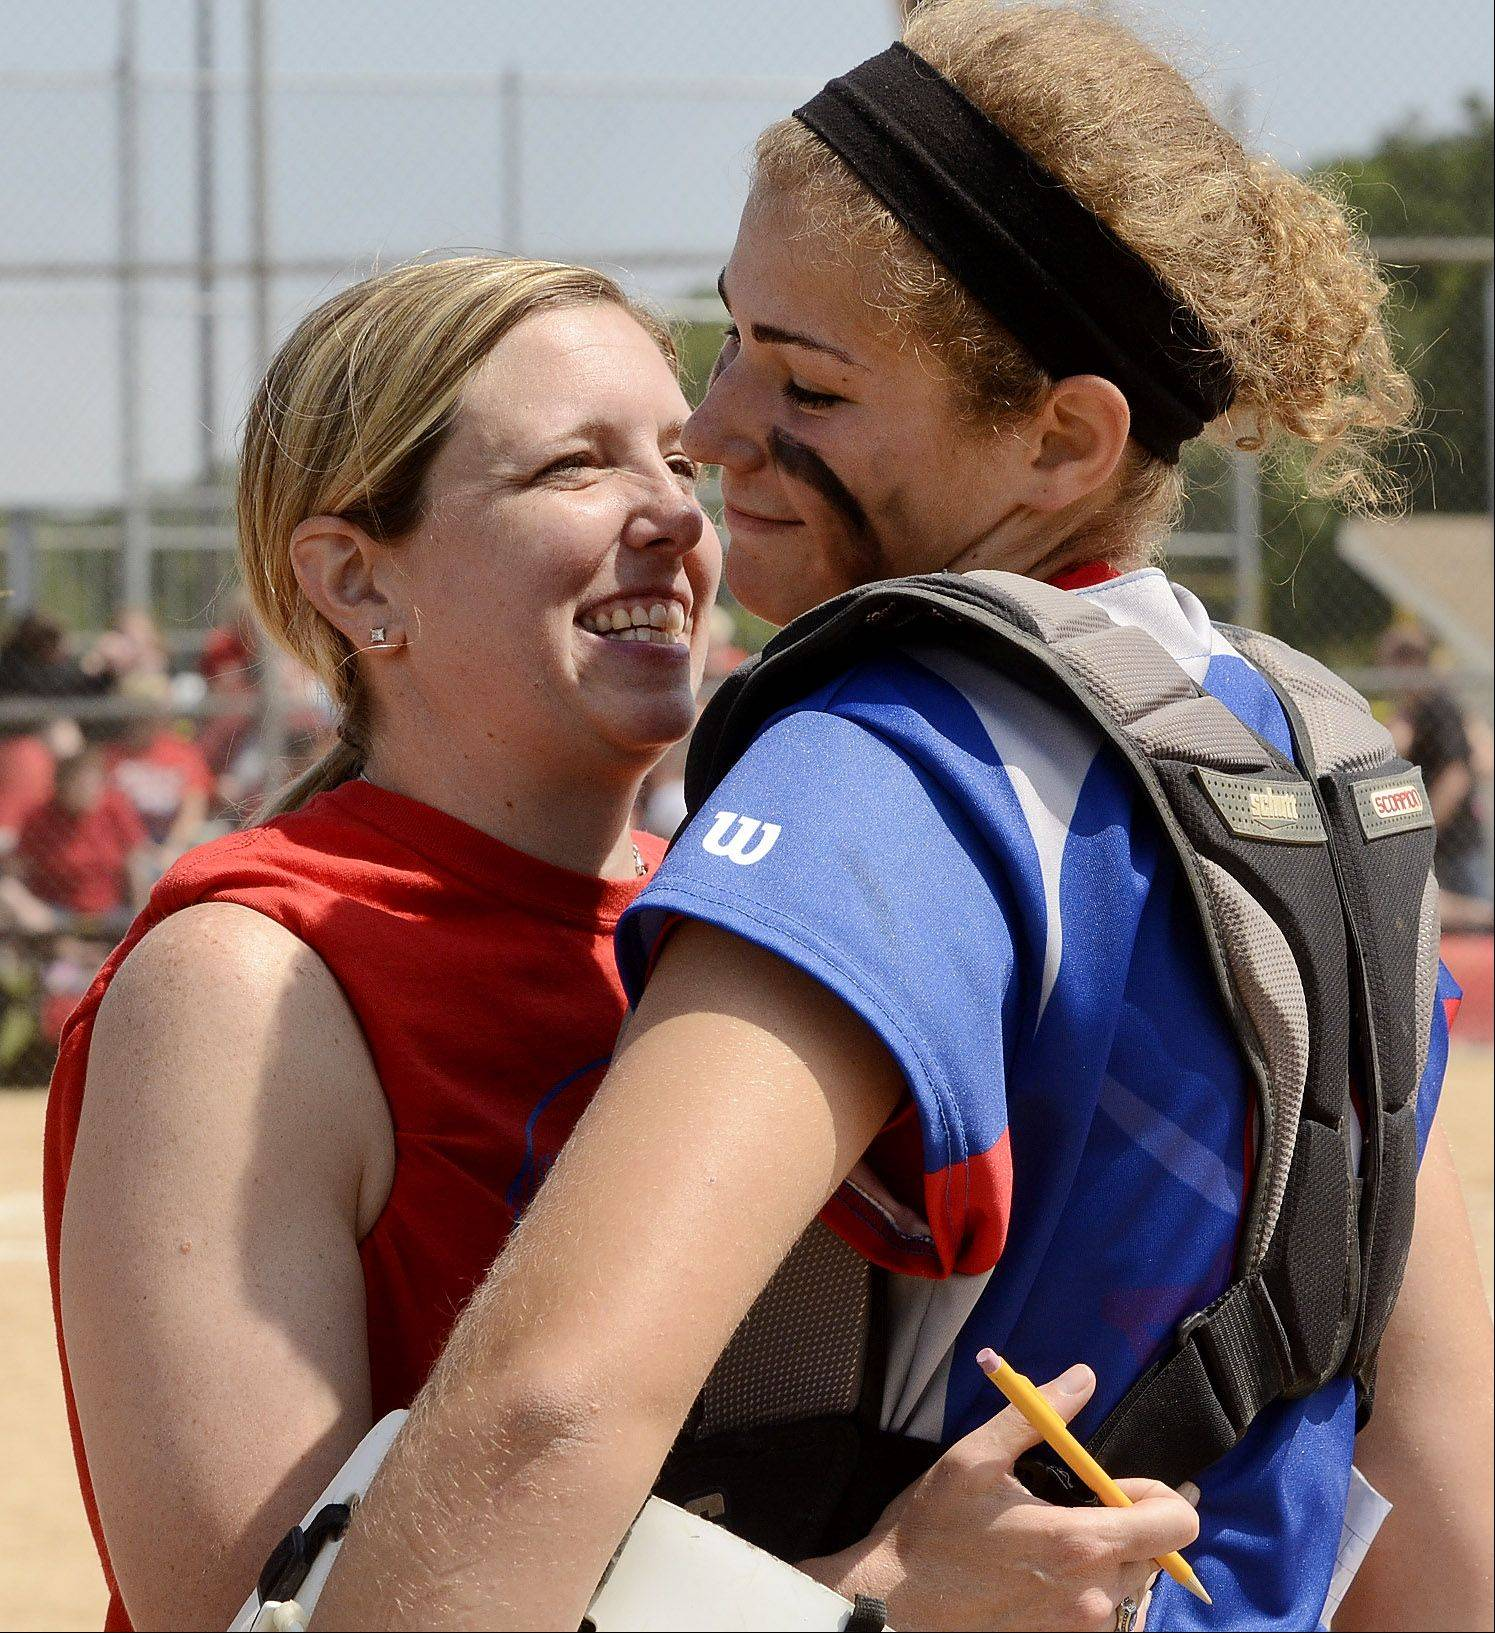 Glenbard South's head coach Julie Fonda hugs catcher Jane Trzaska after winning their Class 3A state semifinal game against Tinley Park.